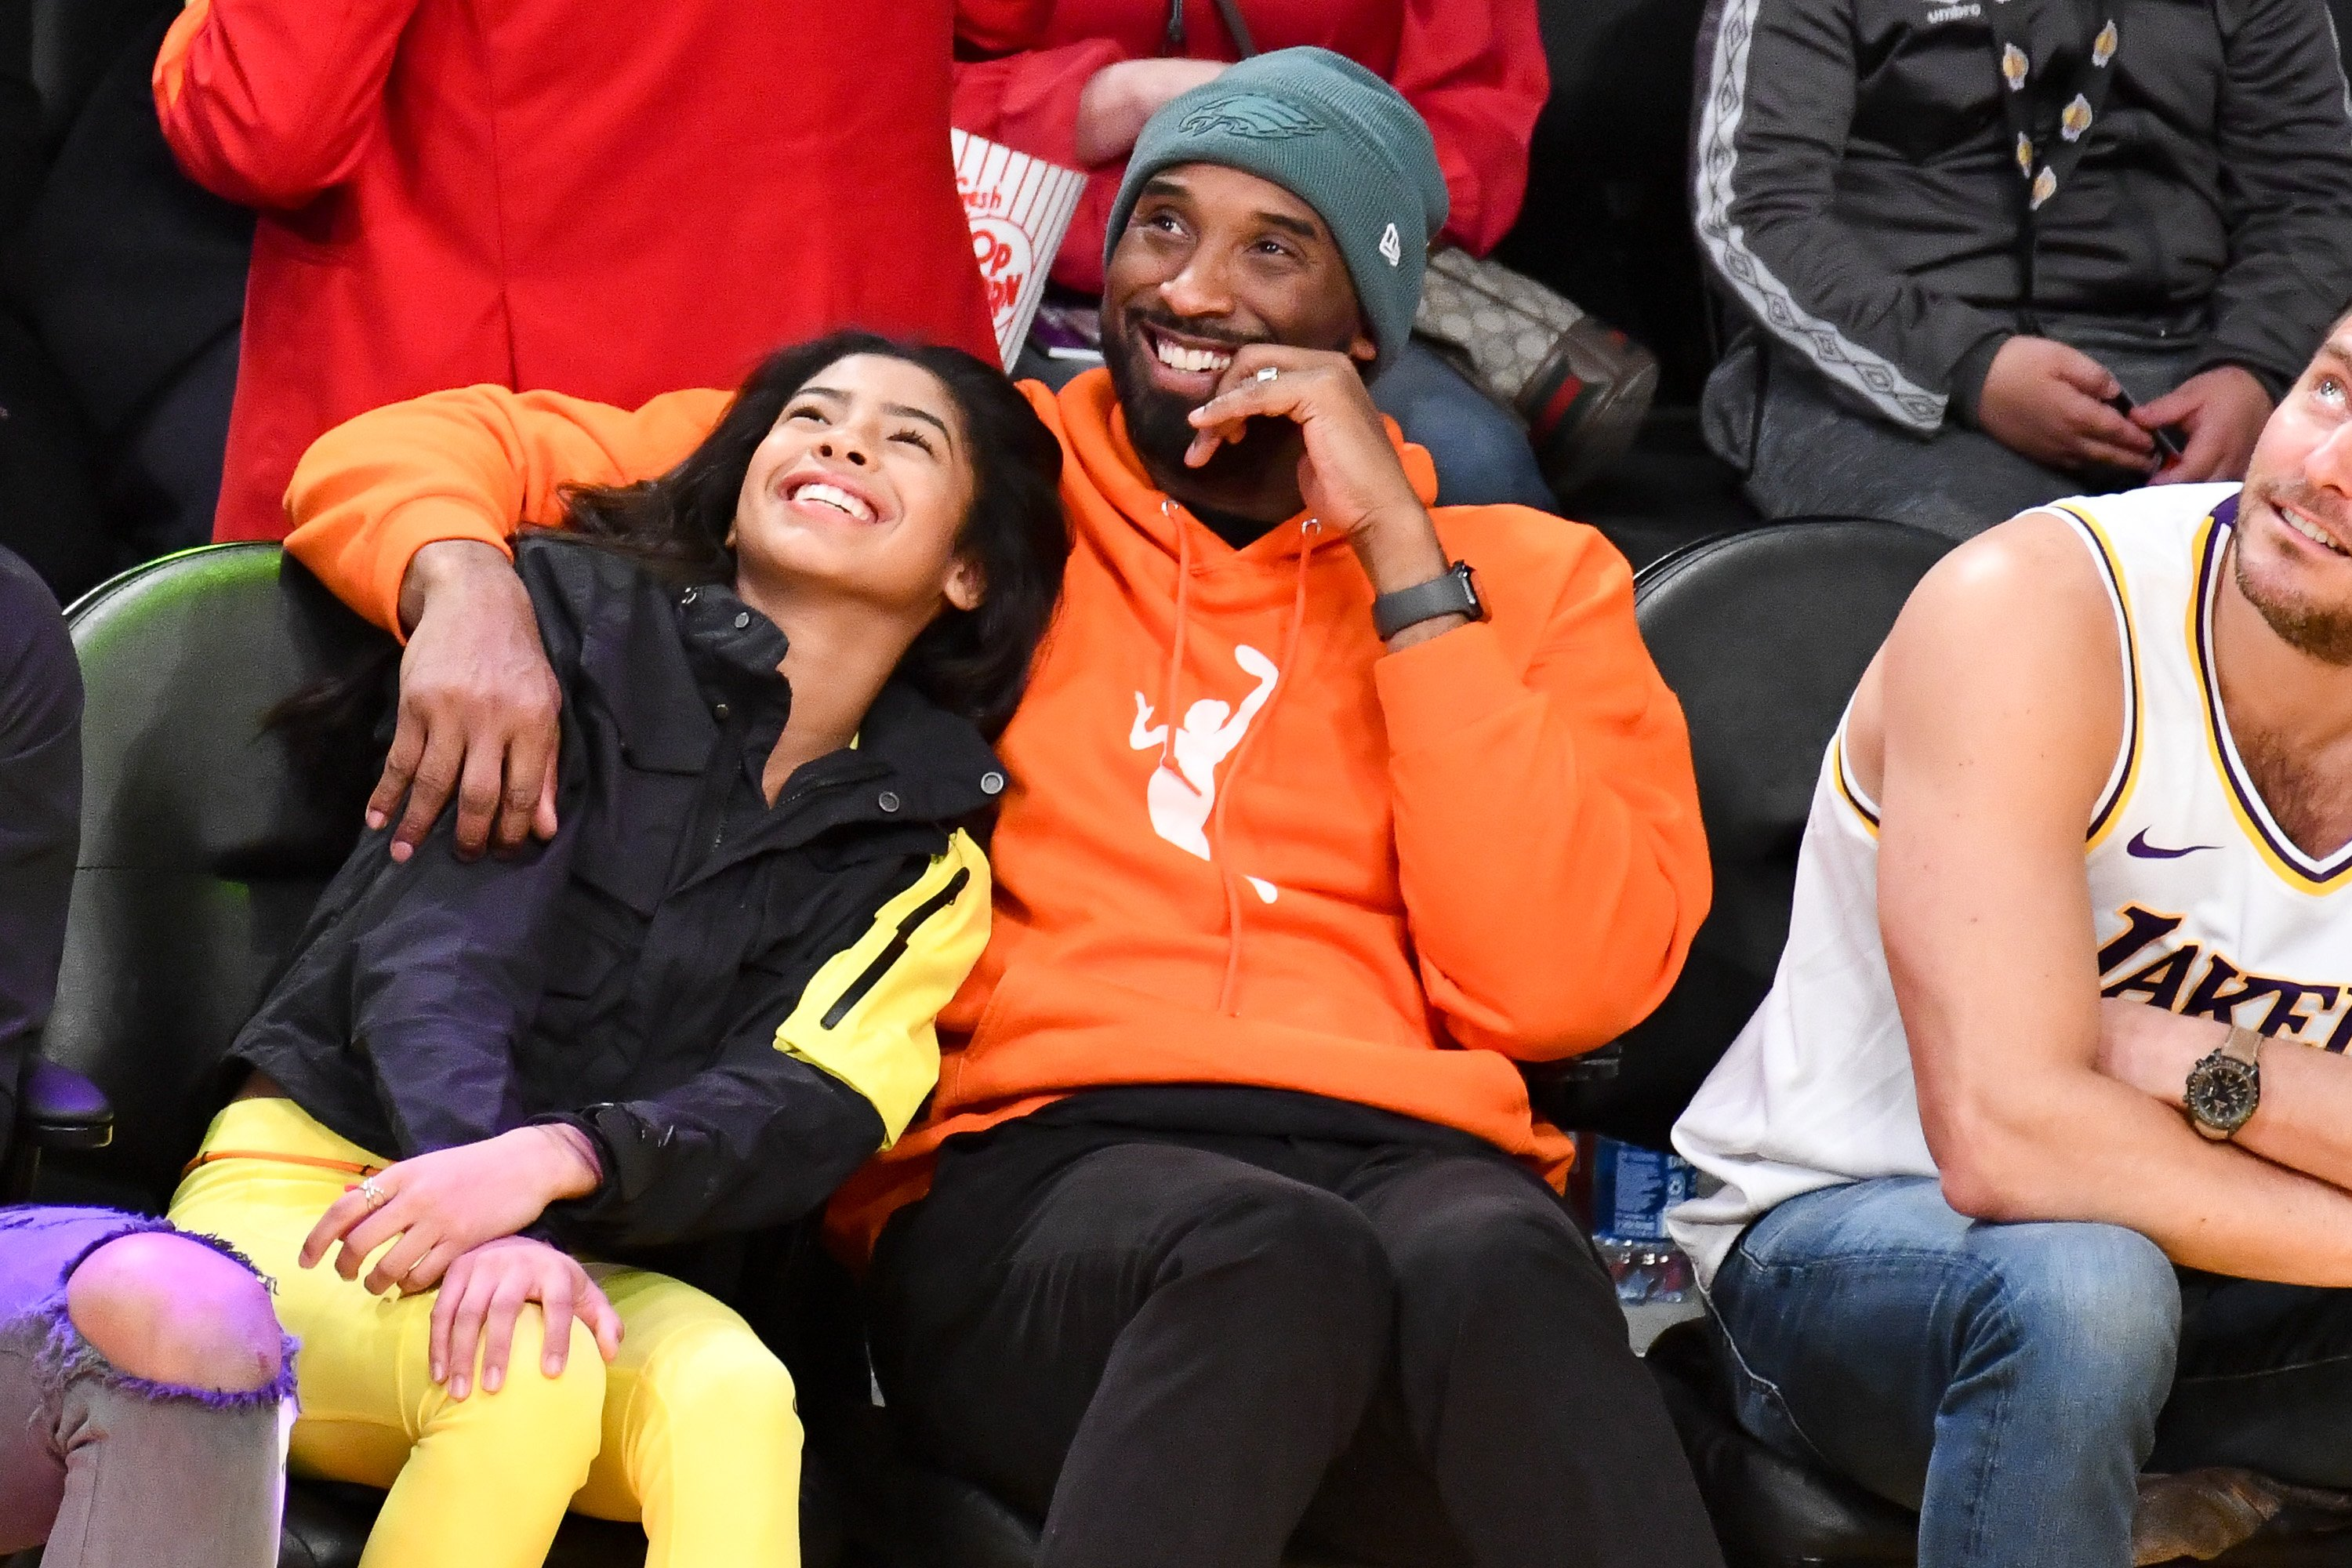 Kobe Bryant and his daughter, Gianna, pictured enjoying a basketball game between the Los Angeles Lakers and the Dallas Mavericks, 2019, California.   Photo: Getty Images.